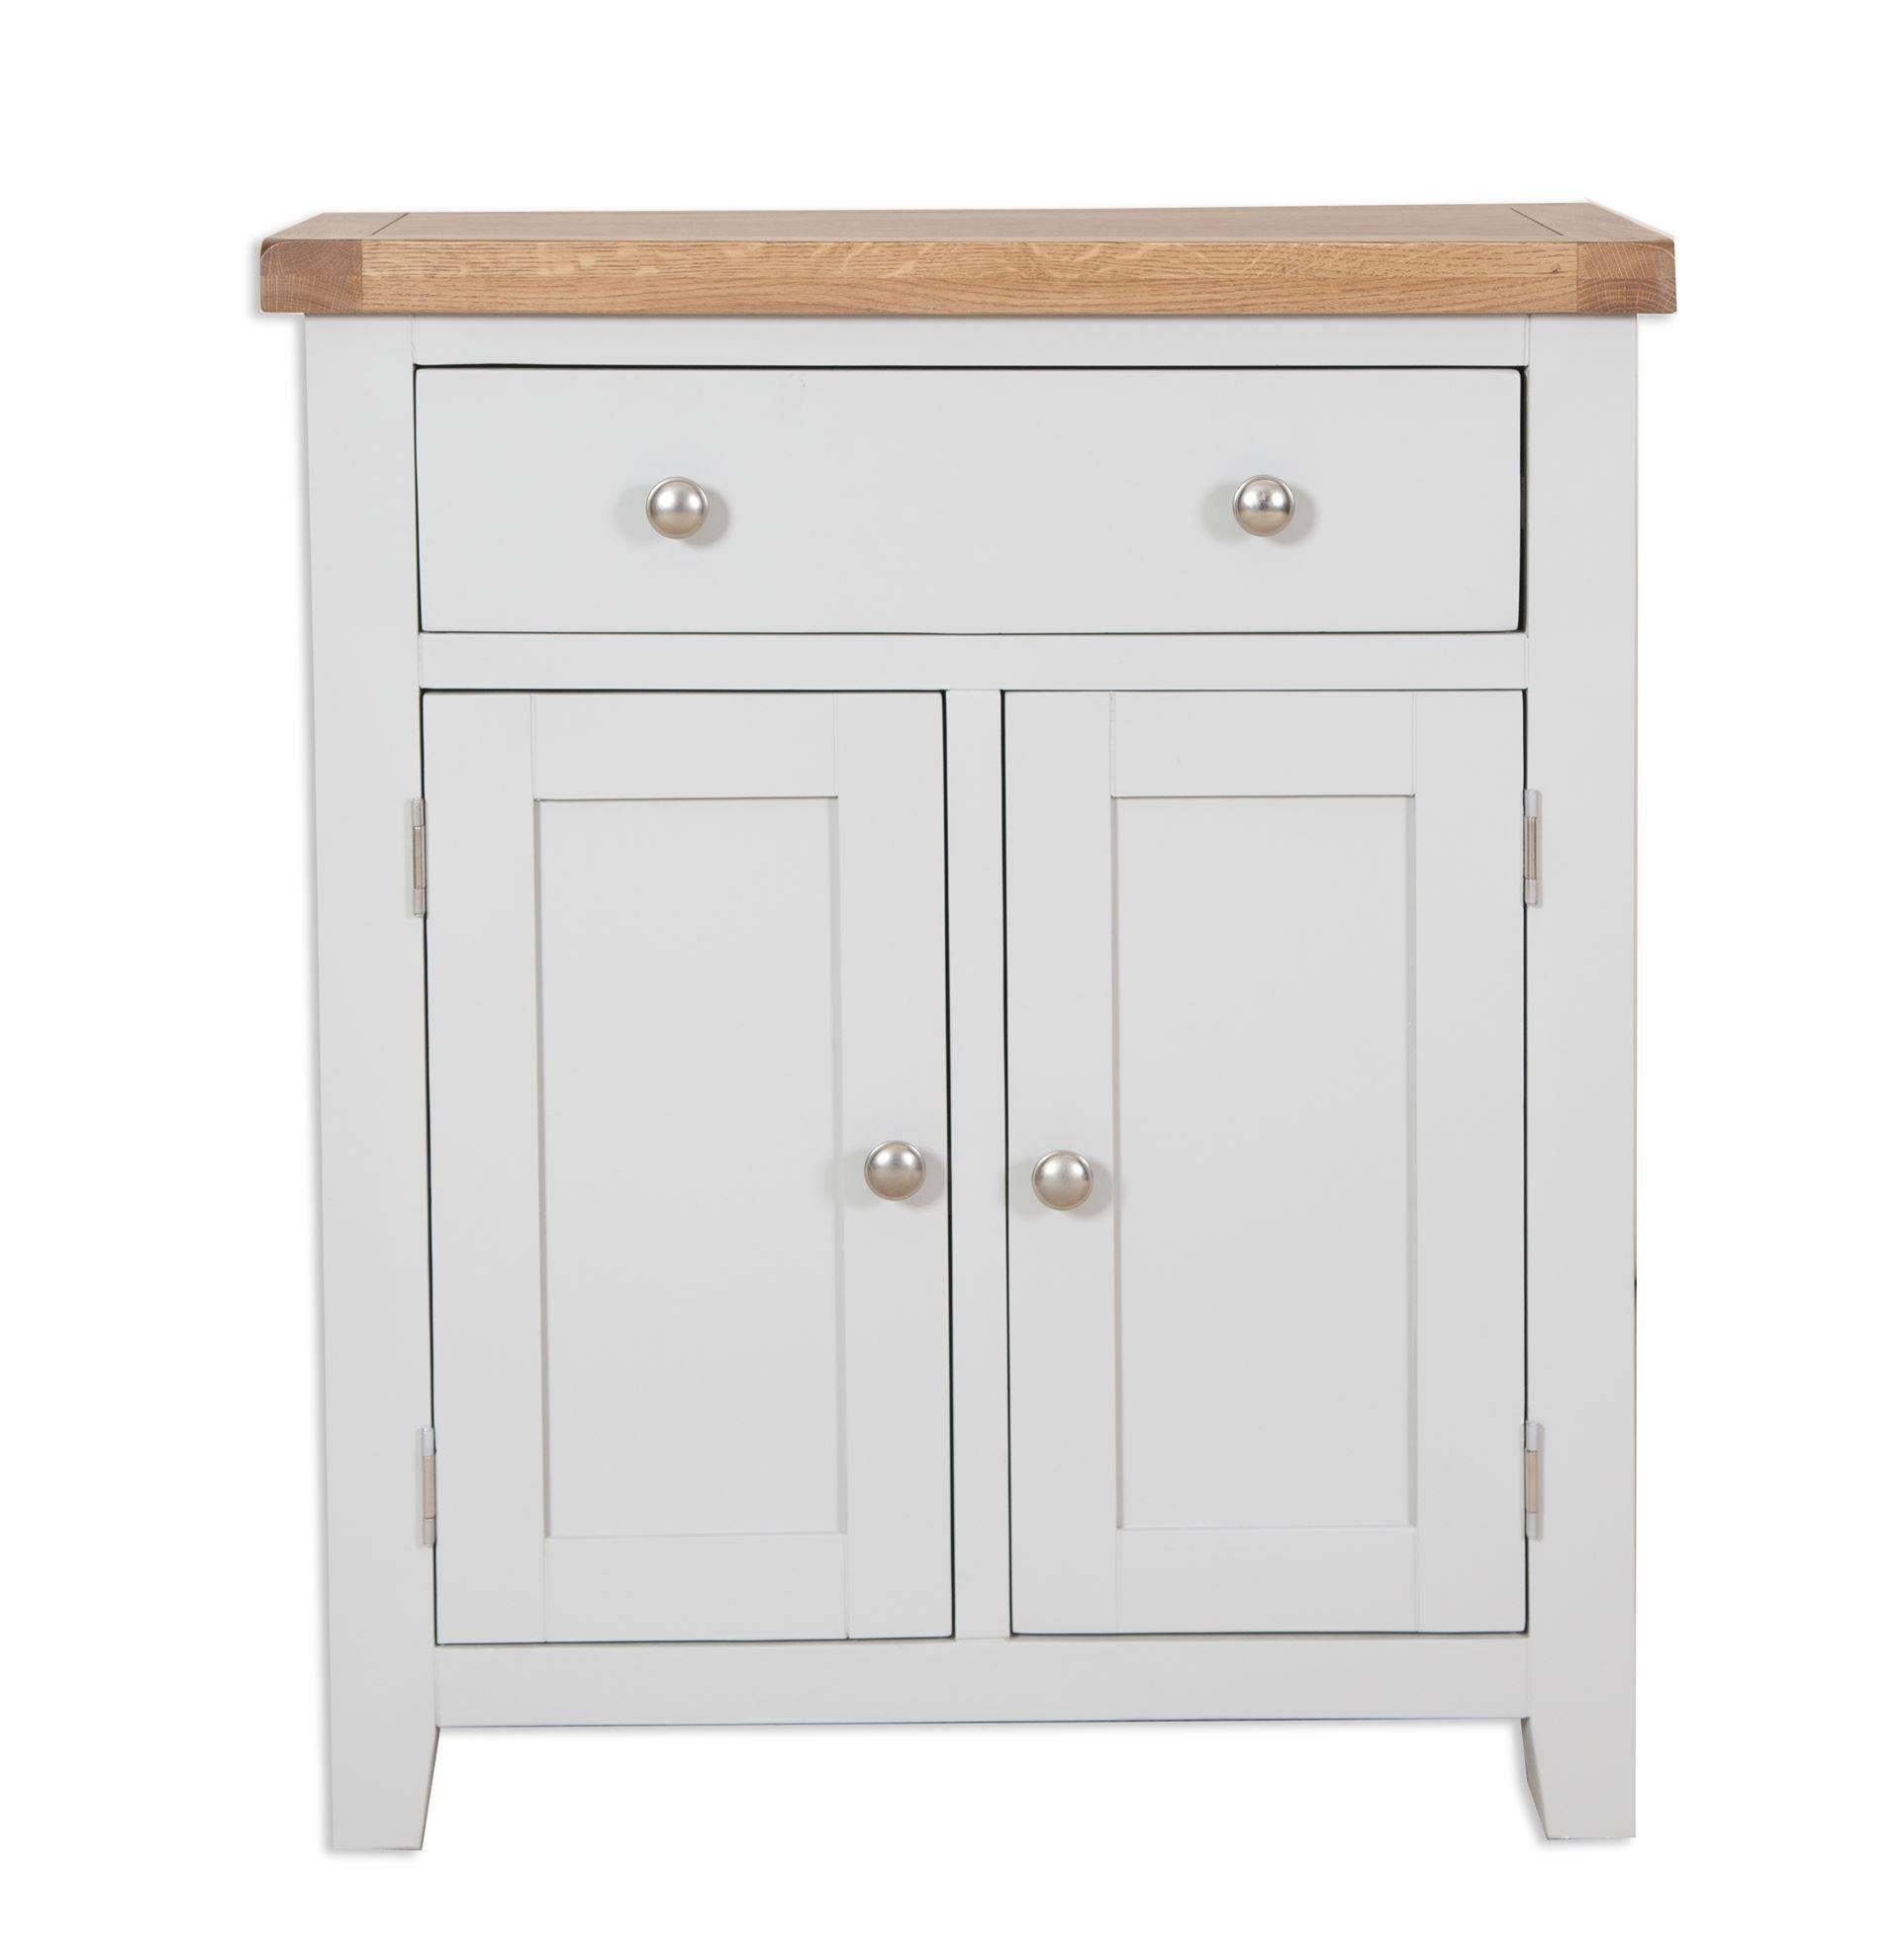 French Grey Hall Cabinet - Cambridge Home & Garden within Hall Sideboards (Image 14 of 30)